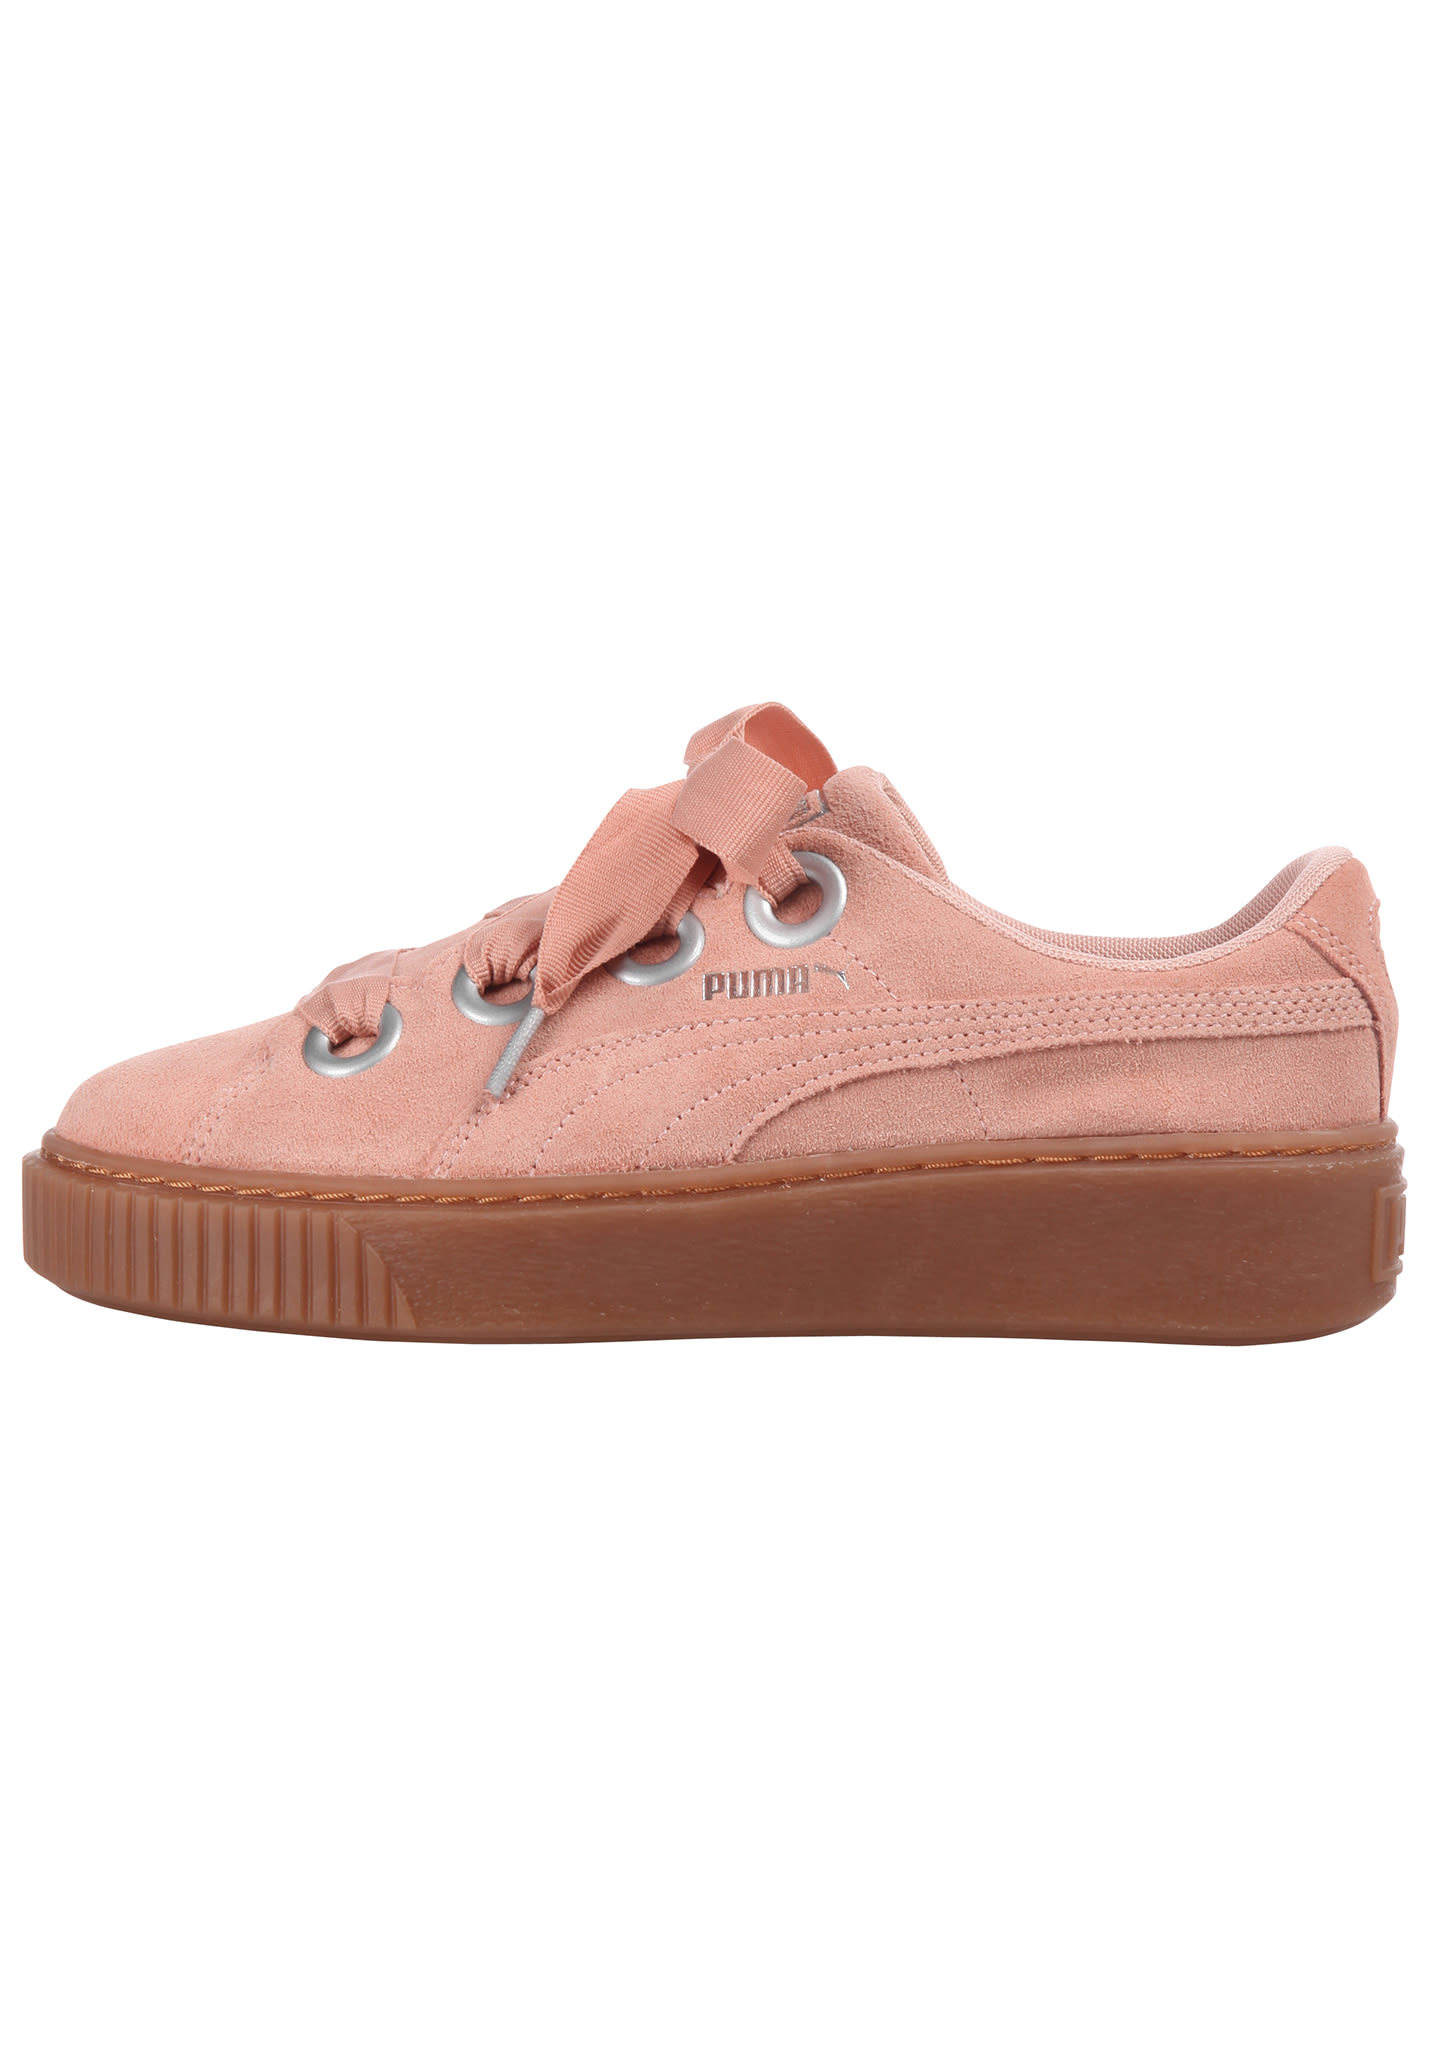 Puma Sneakers For Women Pink Platform Kiss Suede vm0wynN8OP